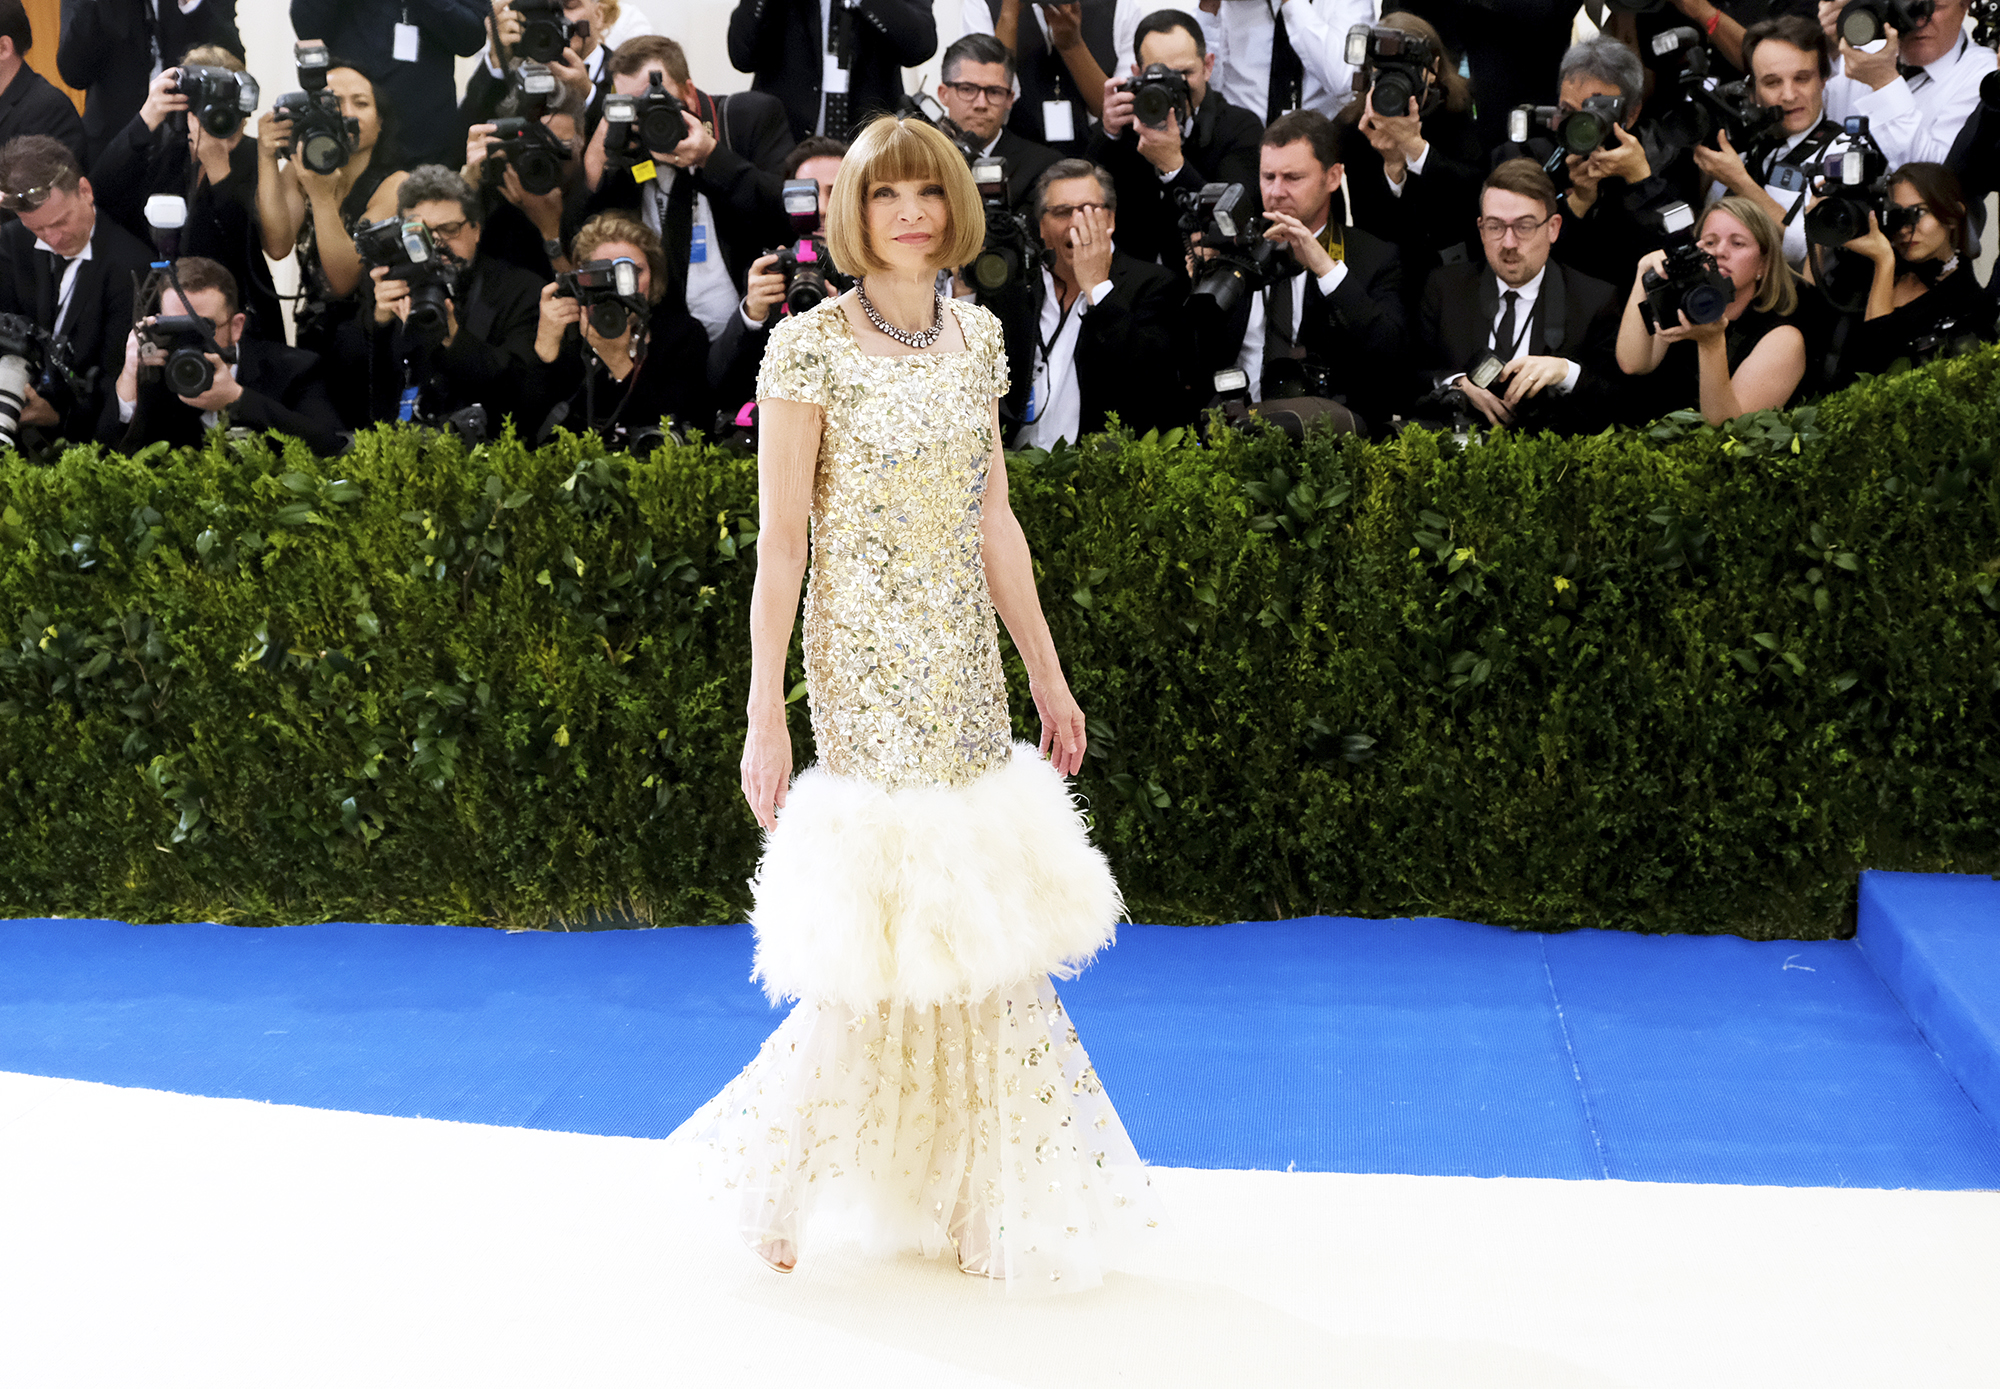 Anna Wintour attends The Metropolitan Museum of Art's Costume Institute benefit gala celebrating the opening of the Rei Kawakubo/Comme des Garçons: Art of the In-Between exhibition in New York City, on May 1, 2017.